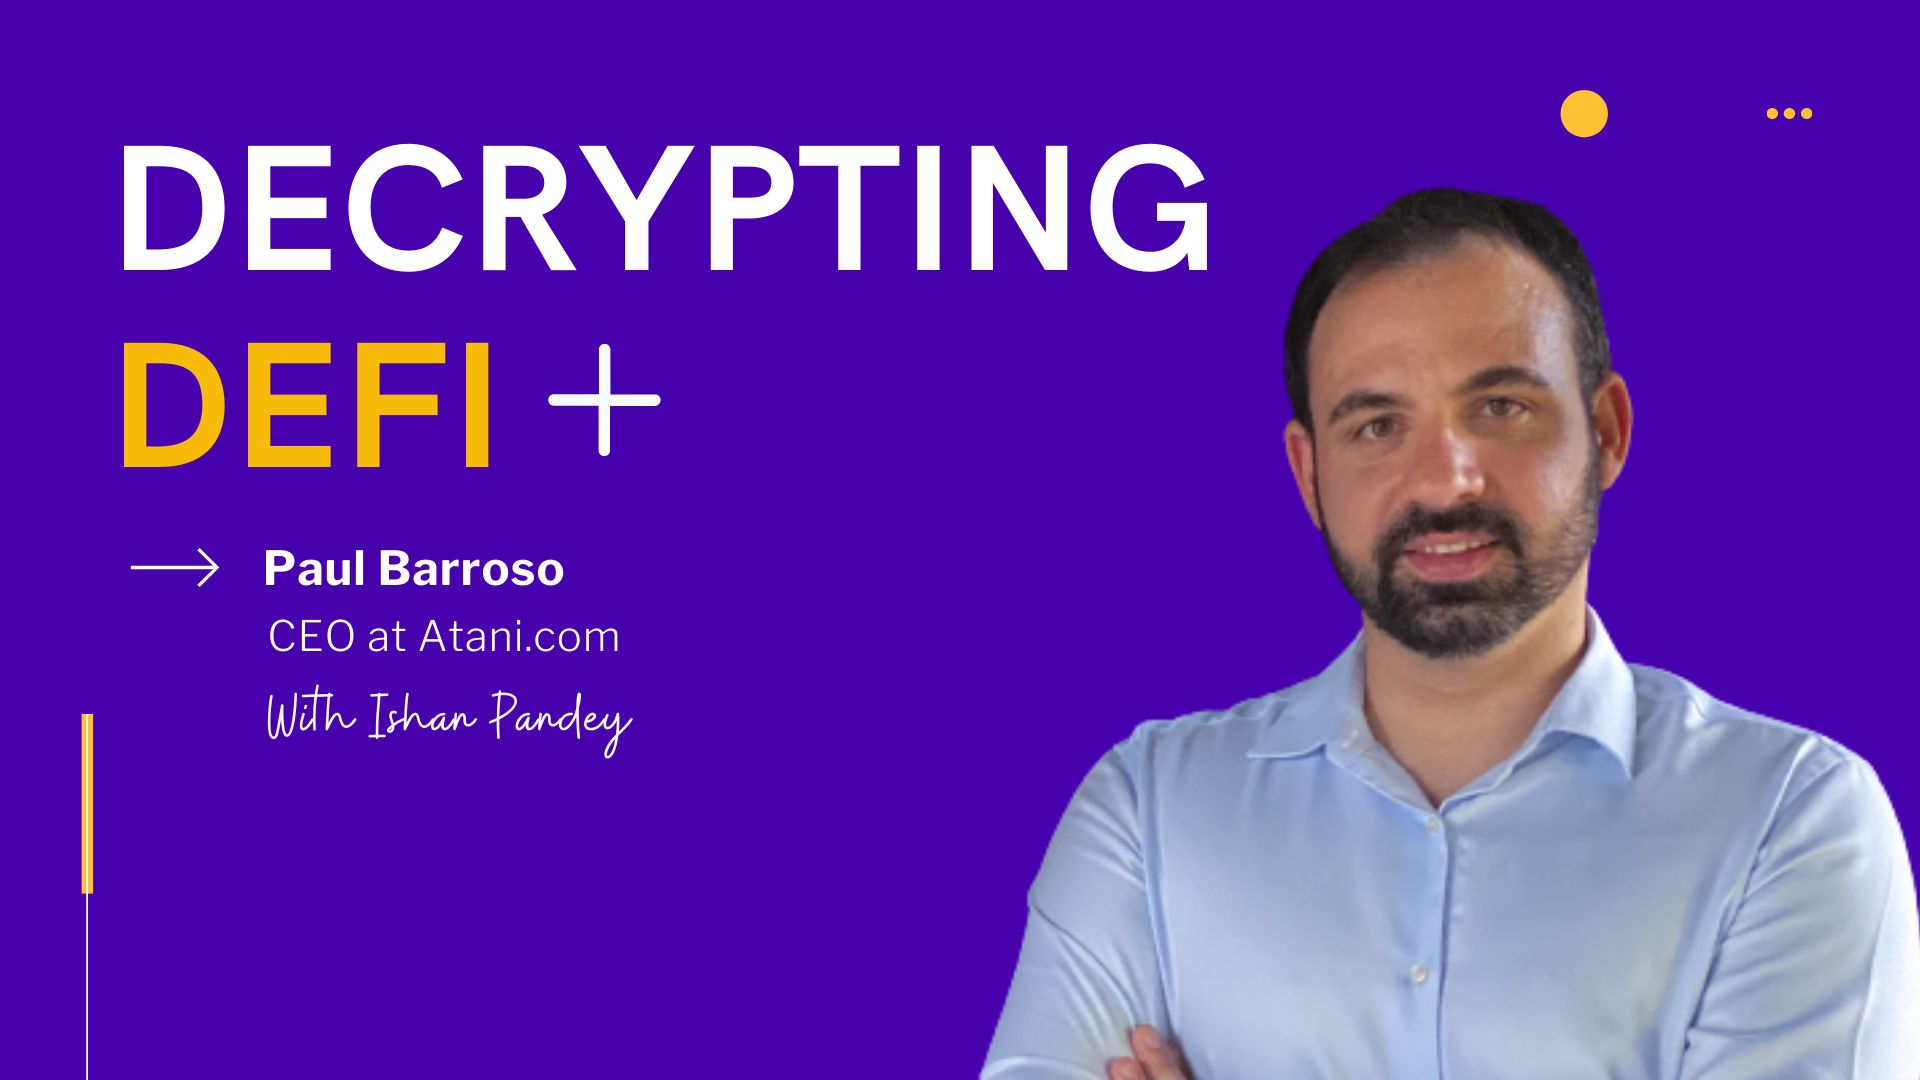 /decrypting-defi-and-cryptocurrency-markets-with-paul-barroso-ceo-at-atanicom-ny1a354e feature image